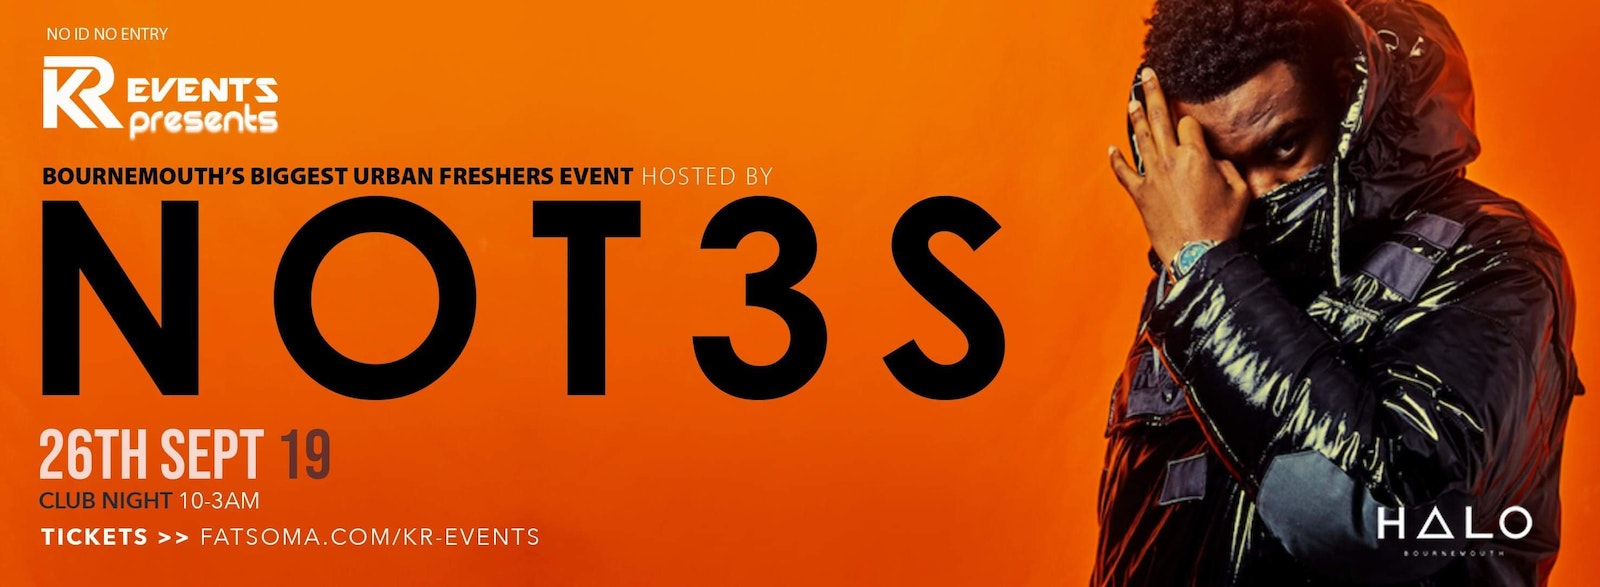 BOURNEMOUTH'S biggest URBAN freshers event hosted by NOT3S!